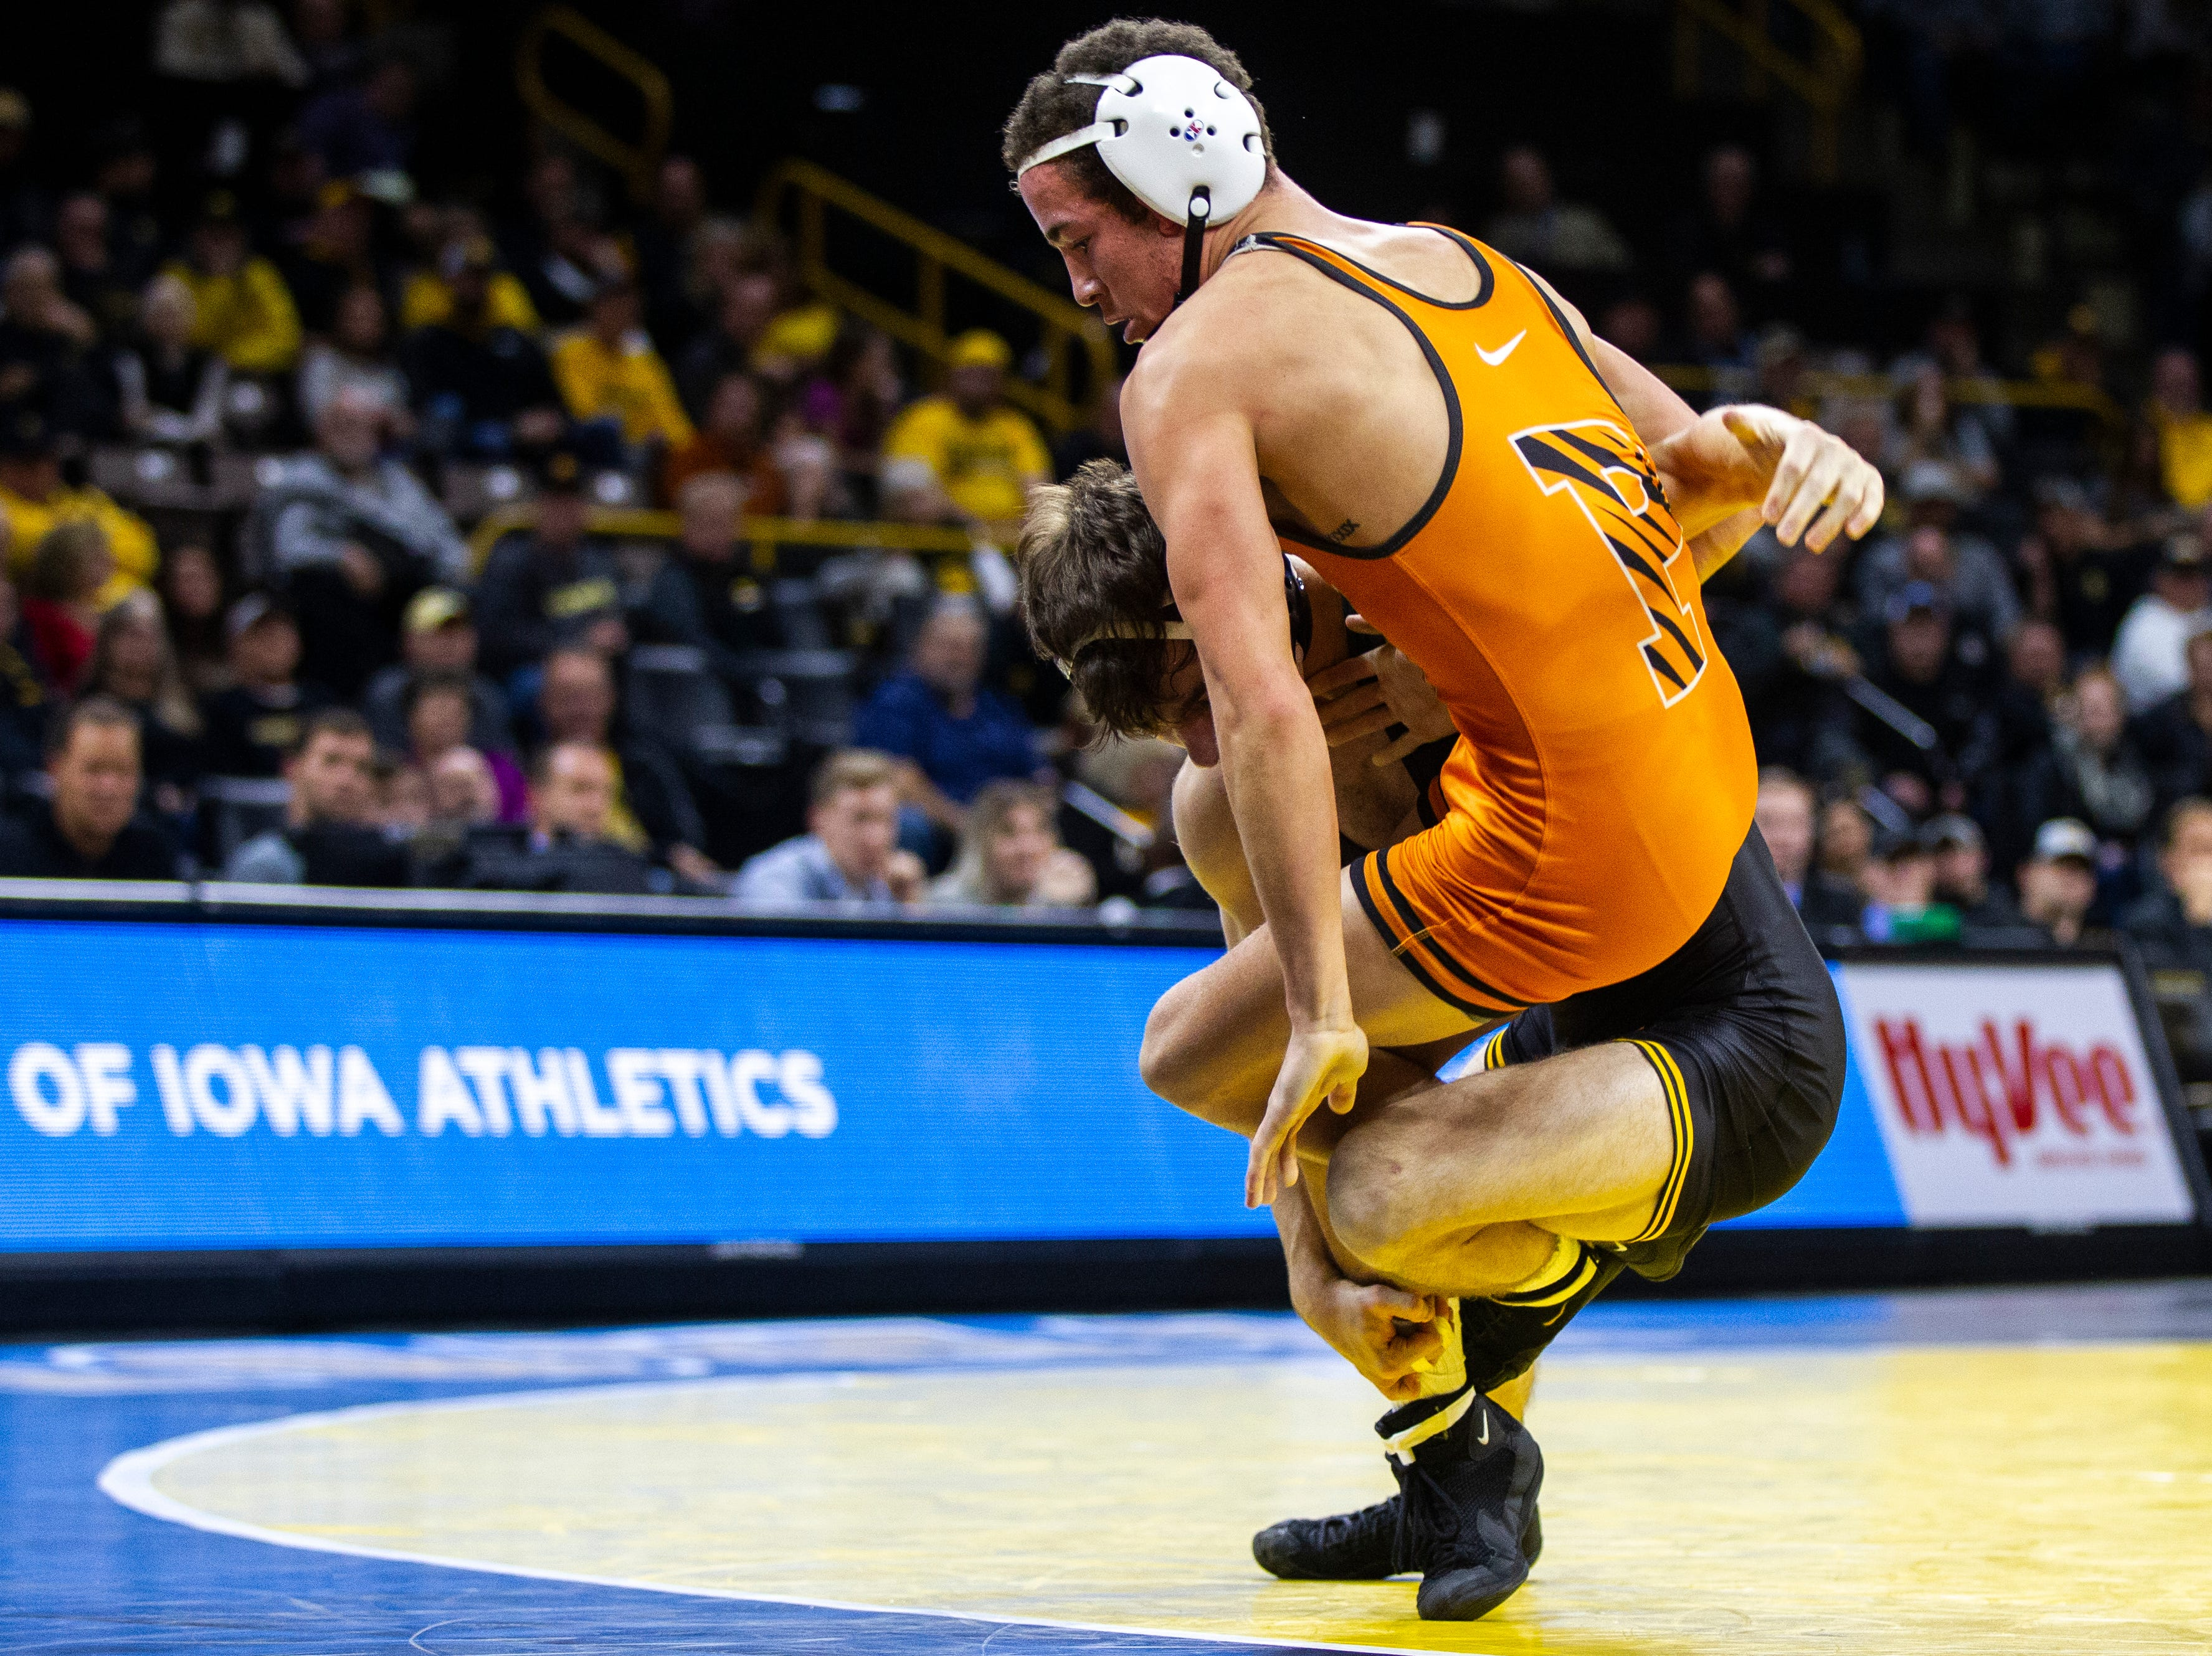 Iowa's Austin DeSanto (left) wrestles Princeton's Jonathan Gomez at 133 during an NCAA wrestle dual on Friday, Nov. 16, 2018, at Carver-Hawkeye Arena in Iowa City.